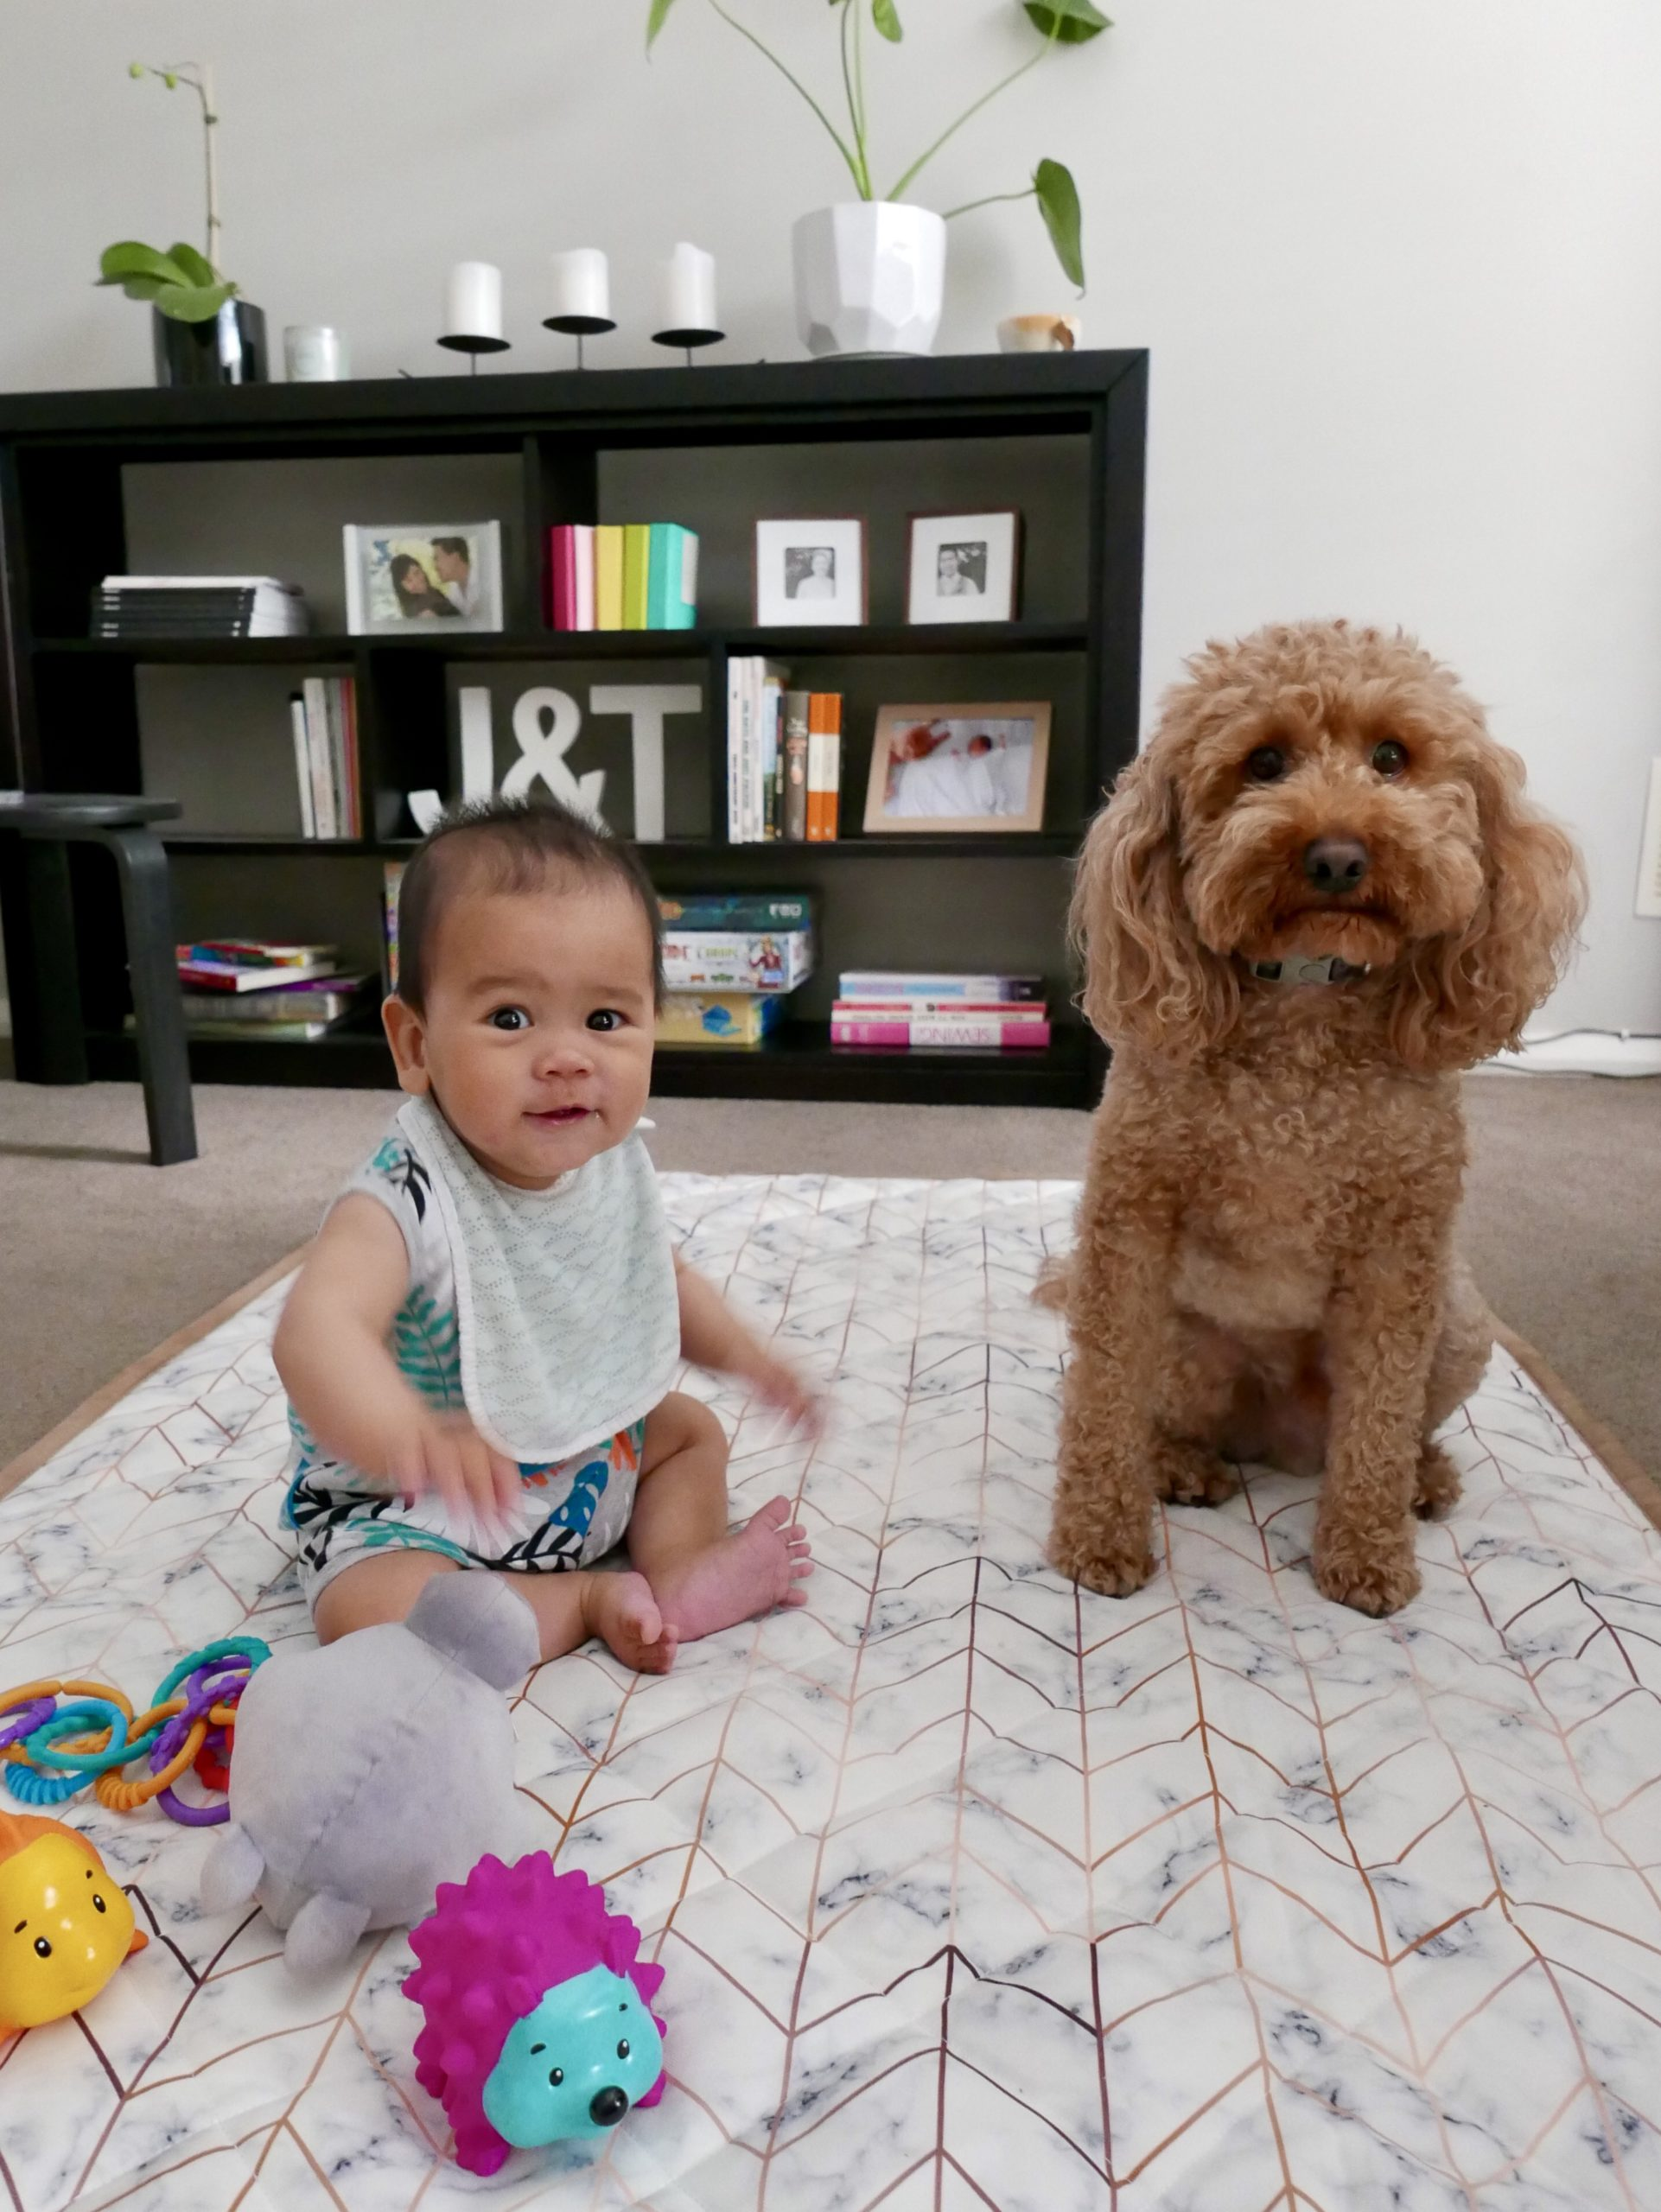 A baby and a dog sitting on a play mat